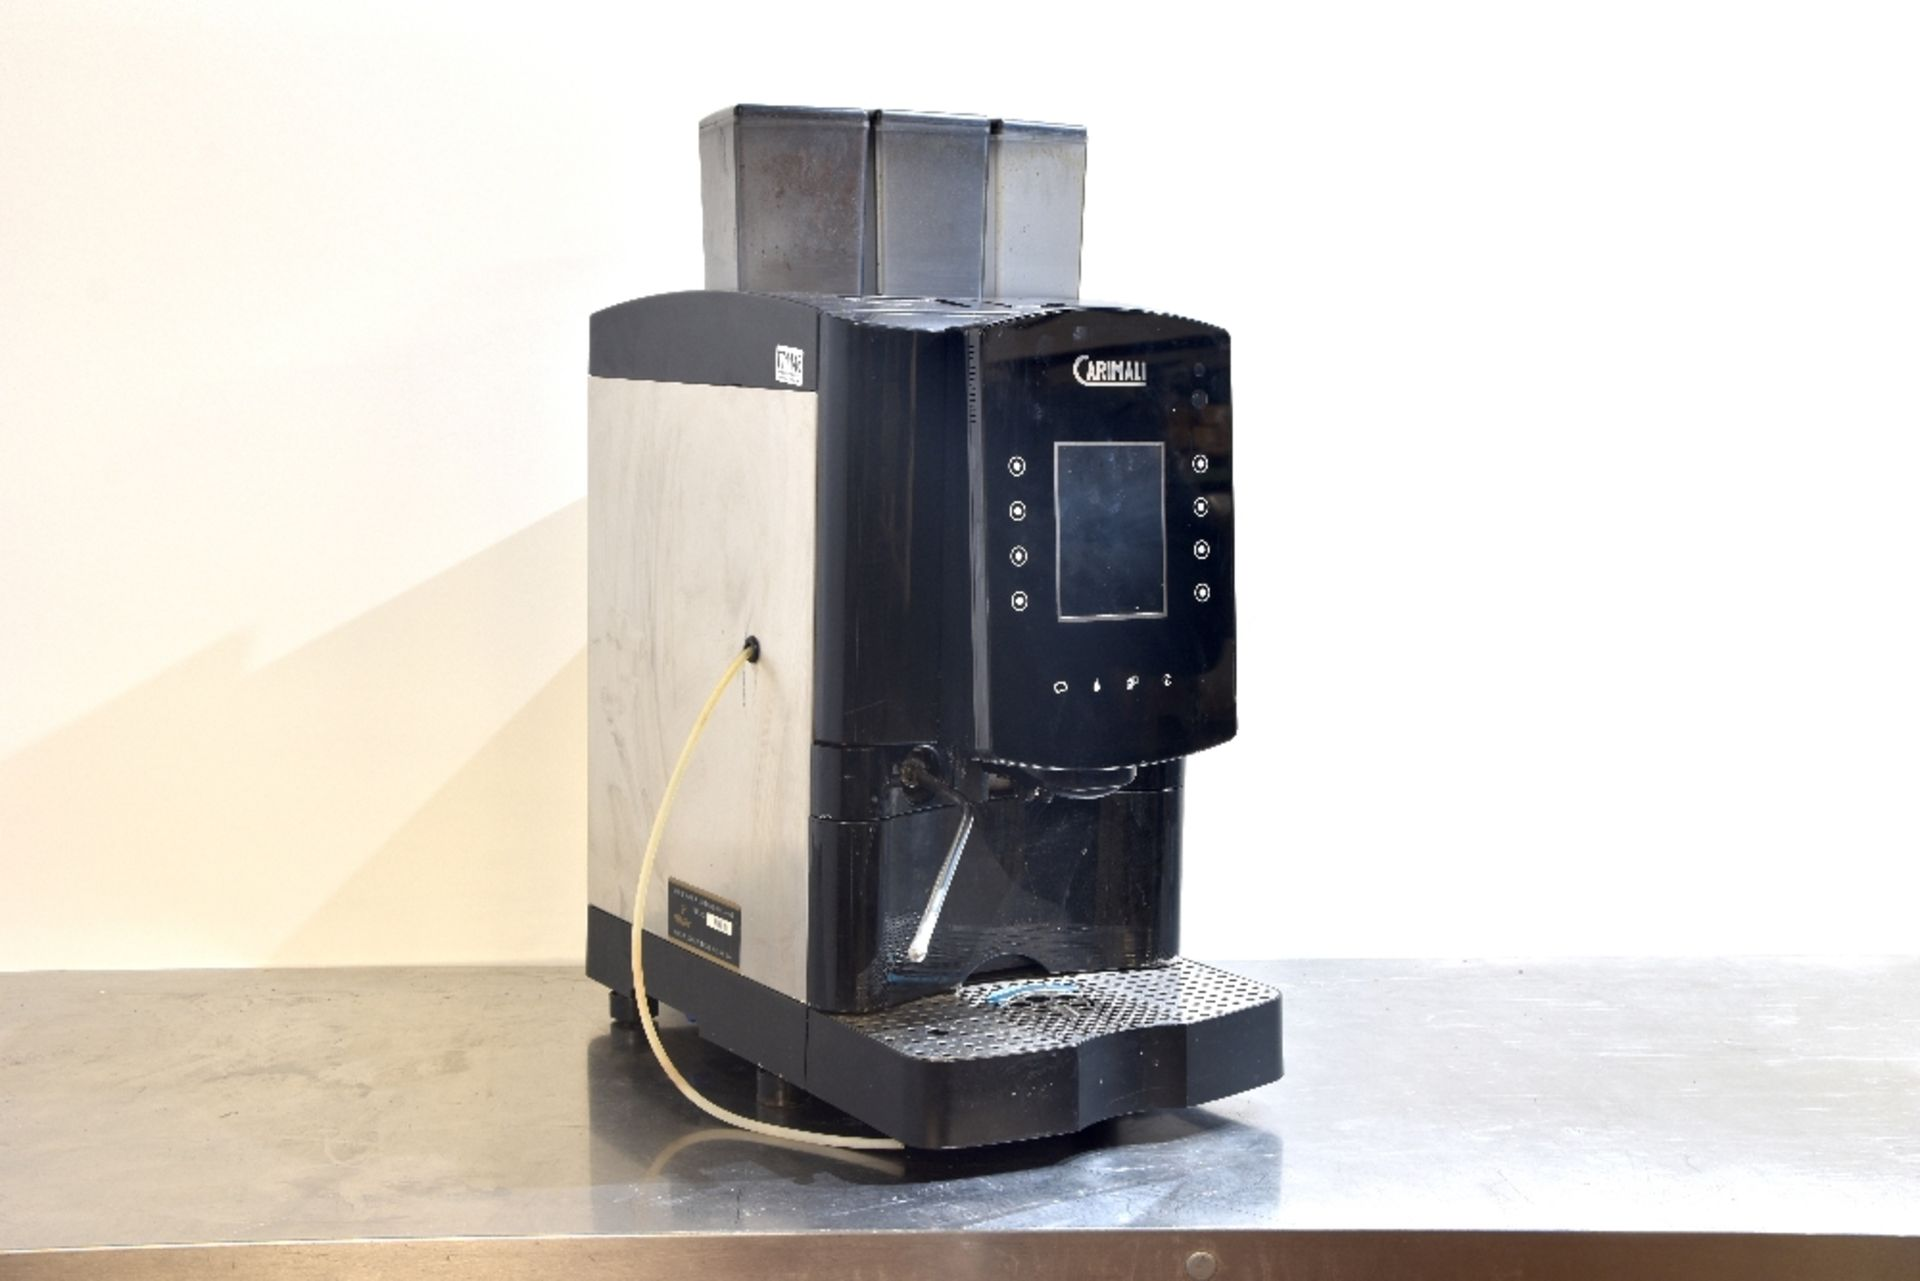 Lot 28 - Carimali Solar Touch Drinks Machine – Bean to cup Coffee + Chocolate & Other Drinks  The Carimali